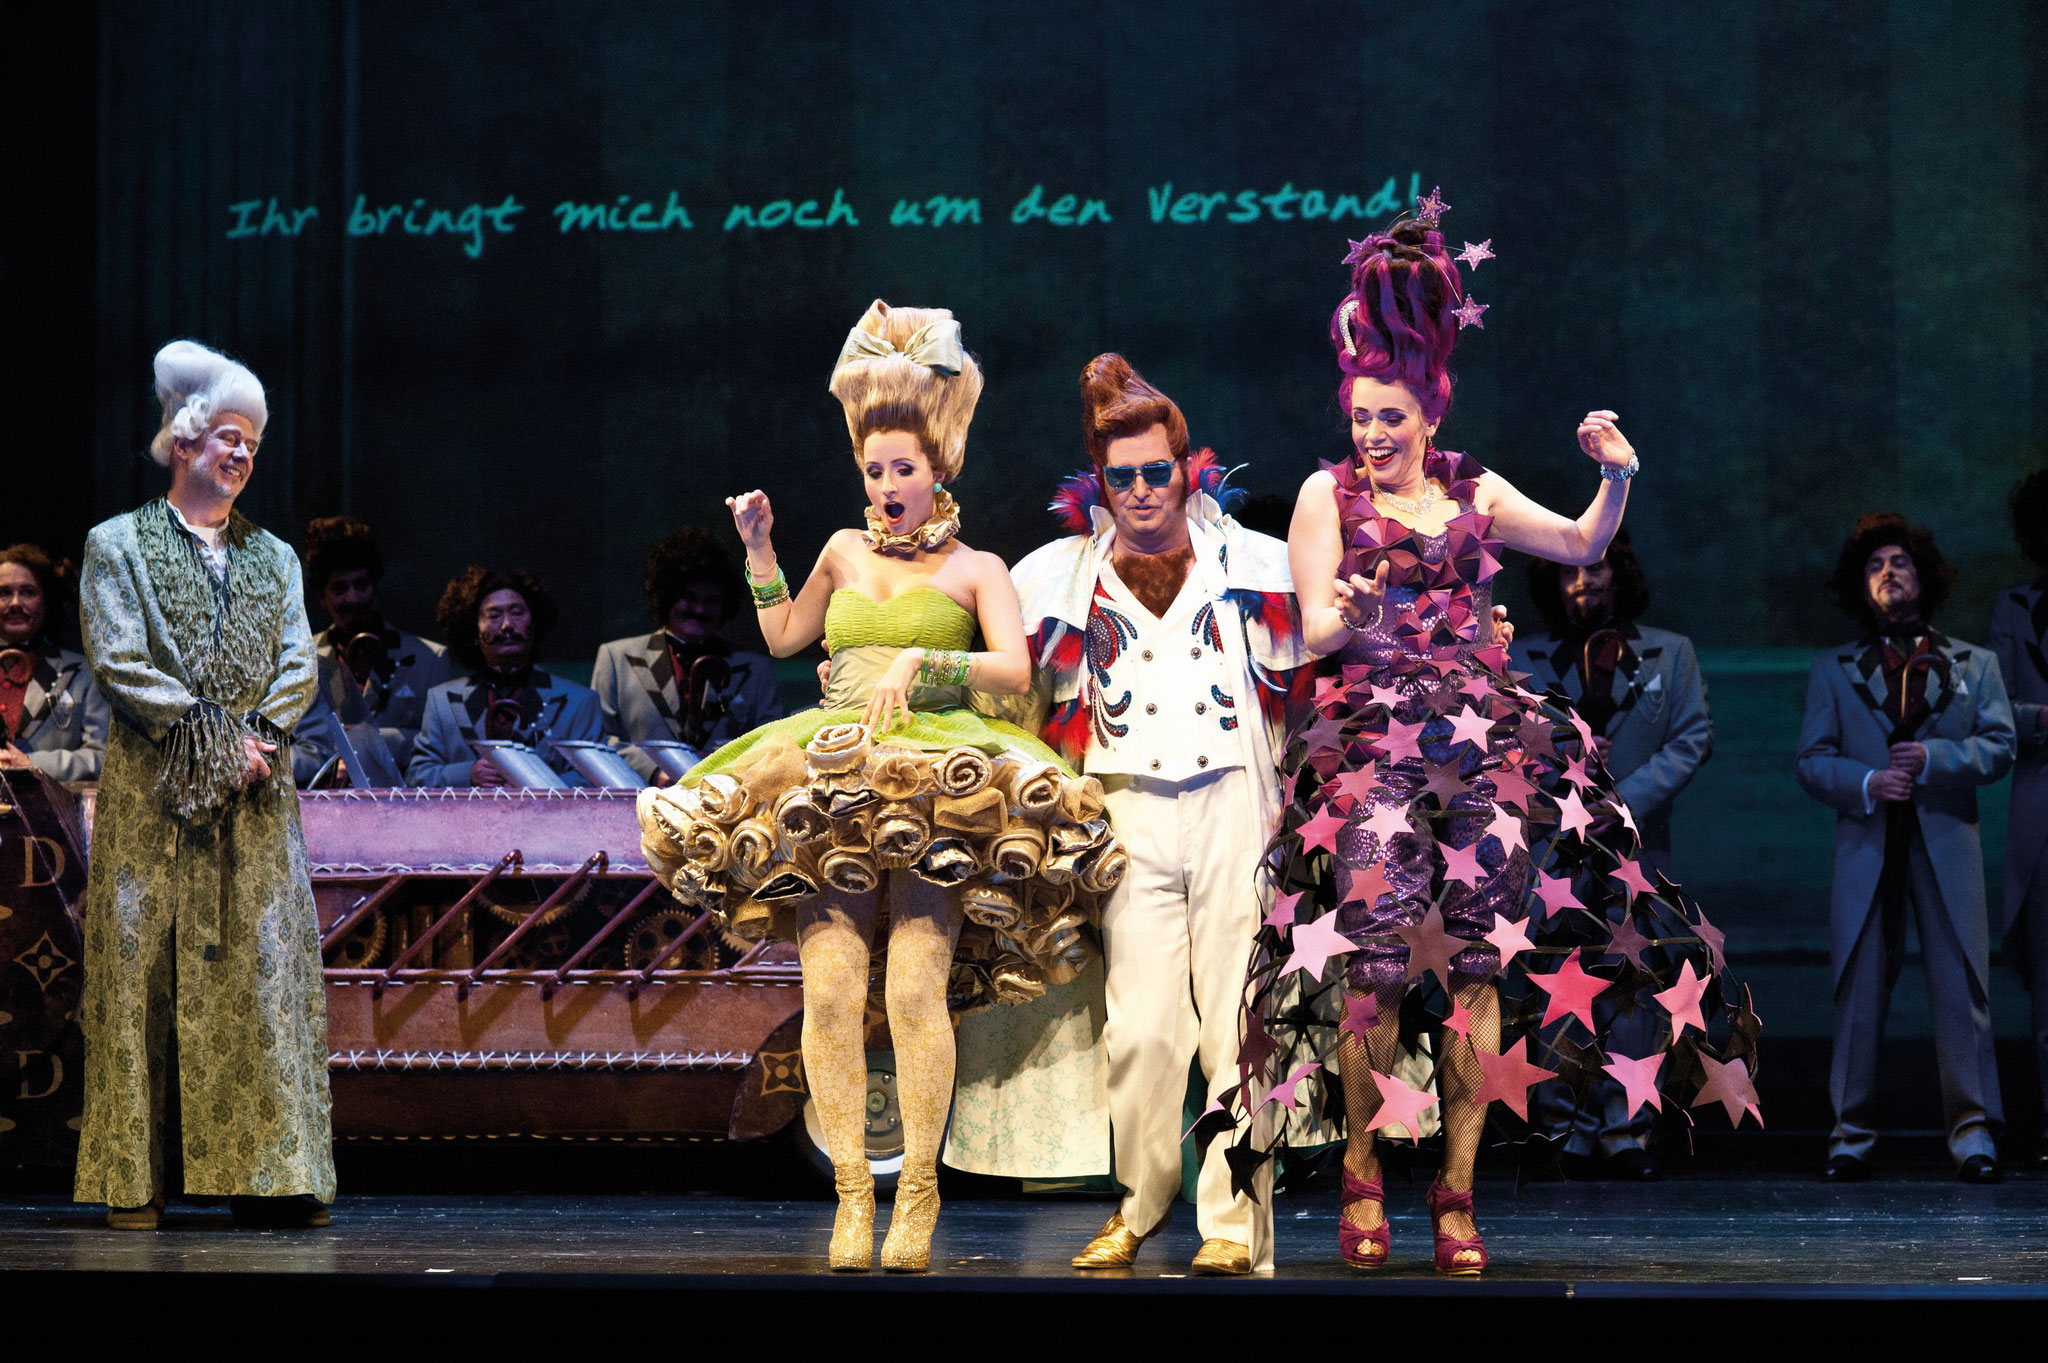 La Cenerentola, with Matthias Winter, Franziska Krötenheerdt and Andreas Kindschuh, The Choir of The Opera Chemnitz, Foto: DIeter Wuschanski